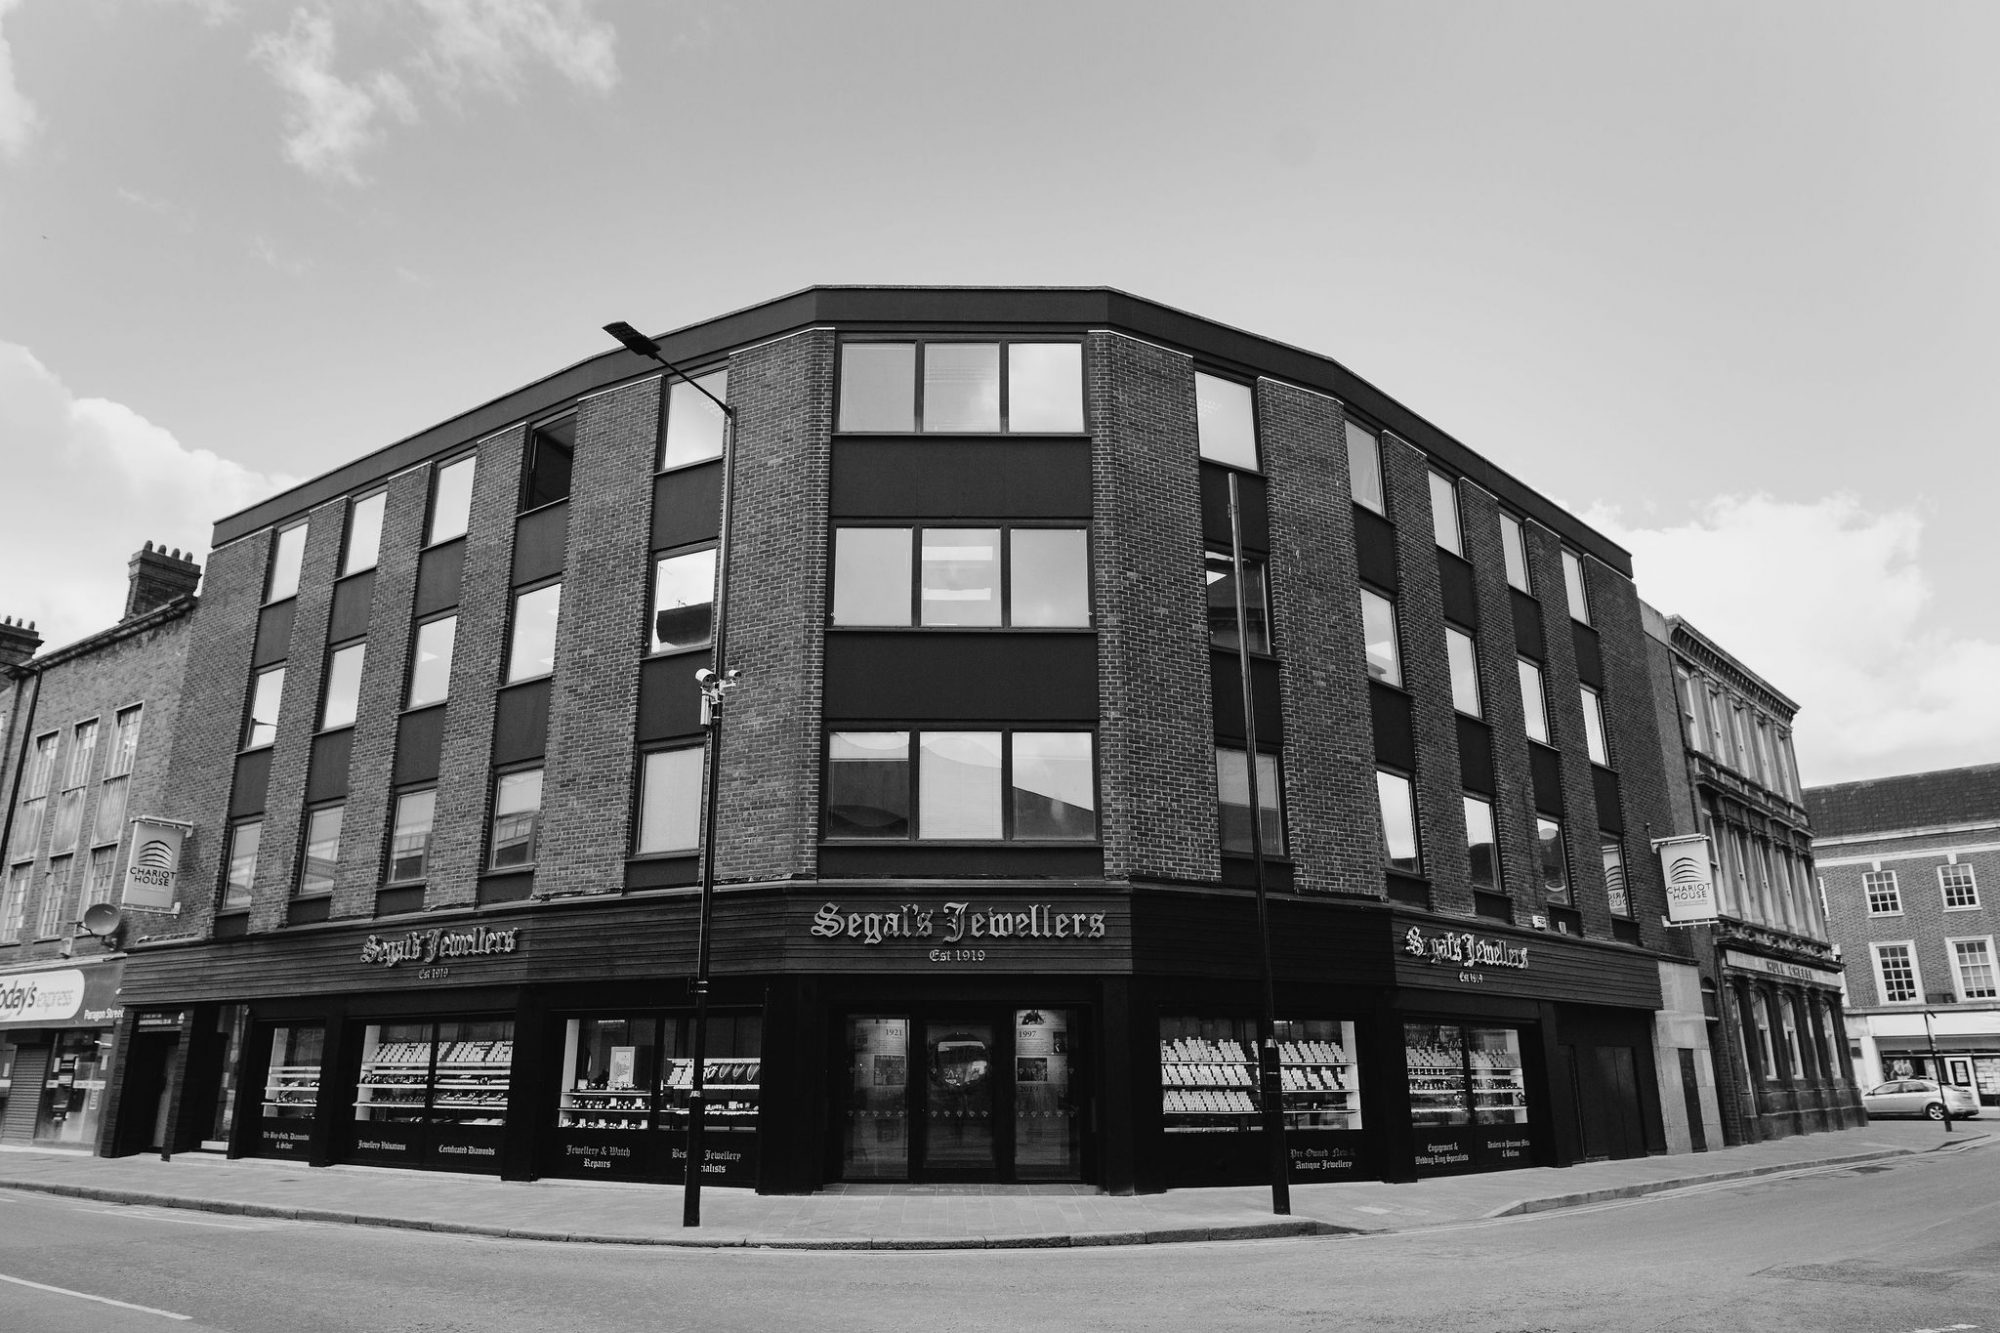 Office Space to Rent Hull, Serviced Office Centre Hull, Offices in Hull